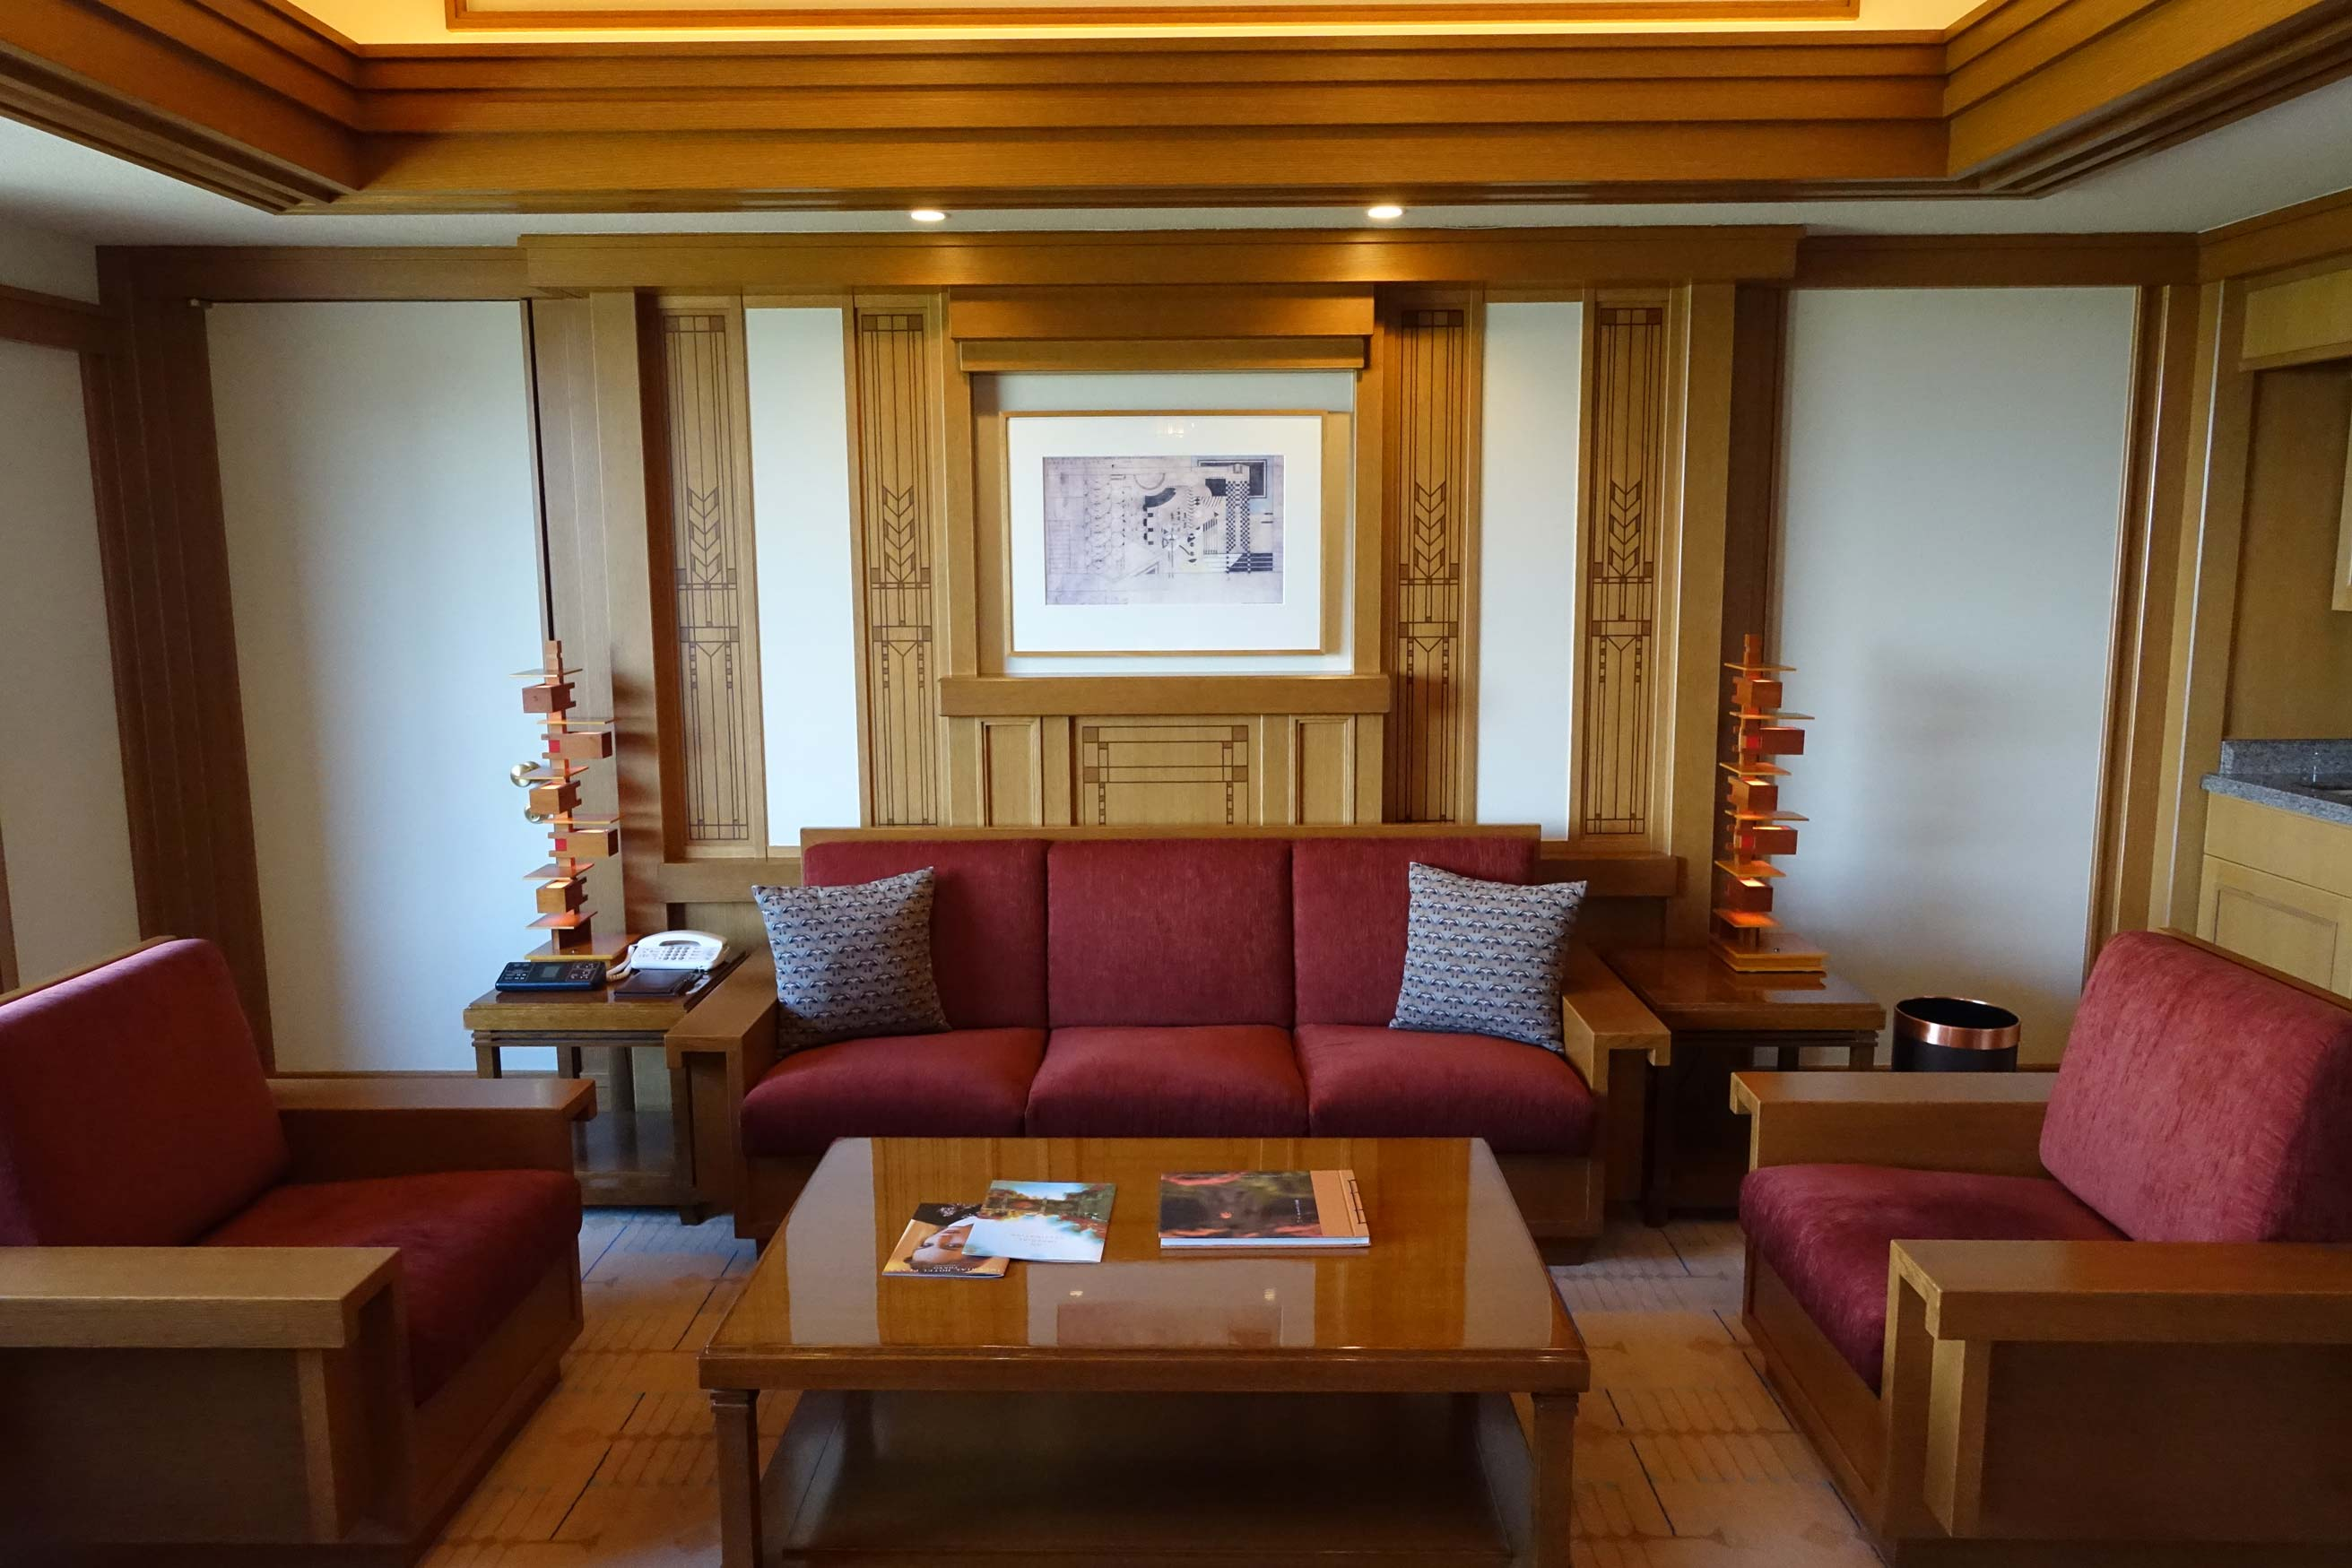 Frank Lloyd Wright Imperial Hotel Guest Rooms